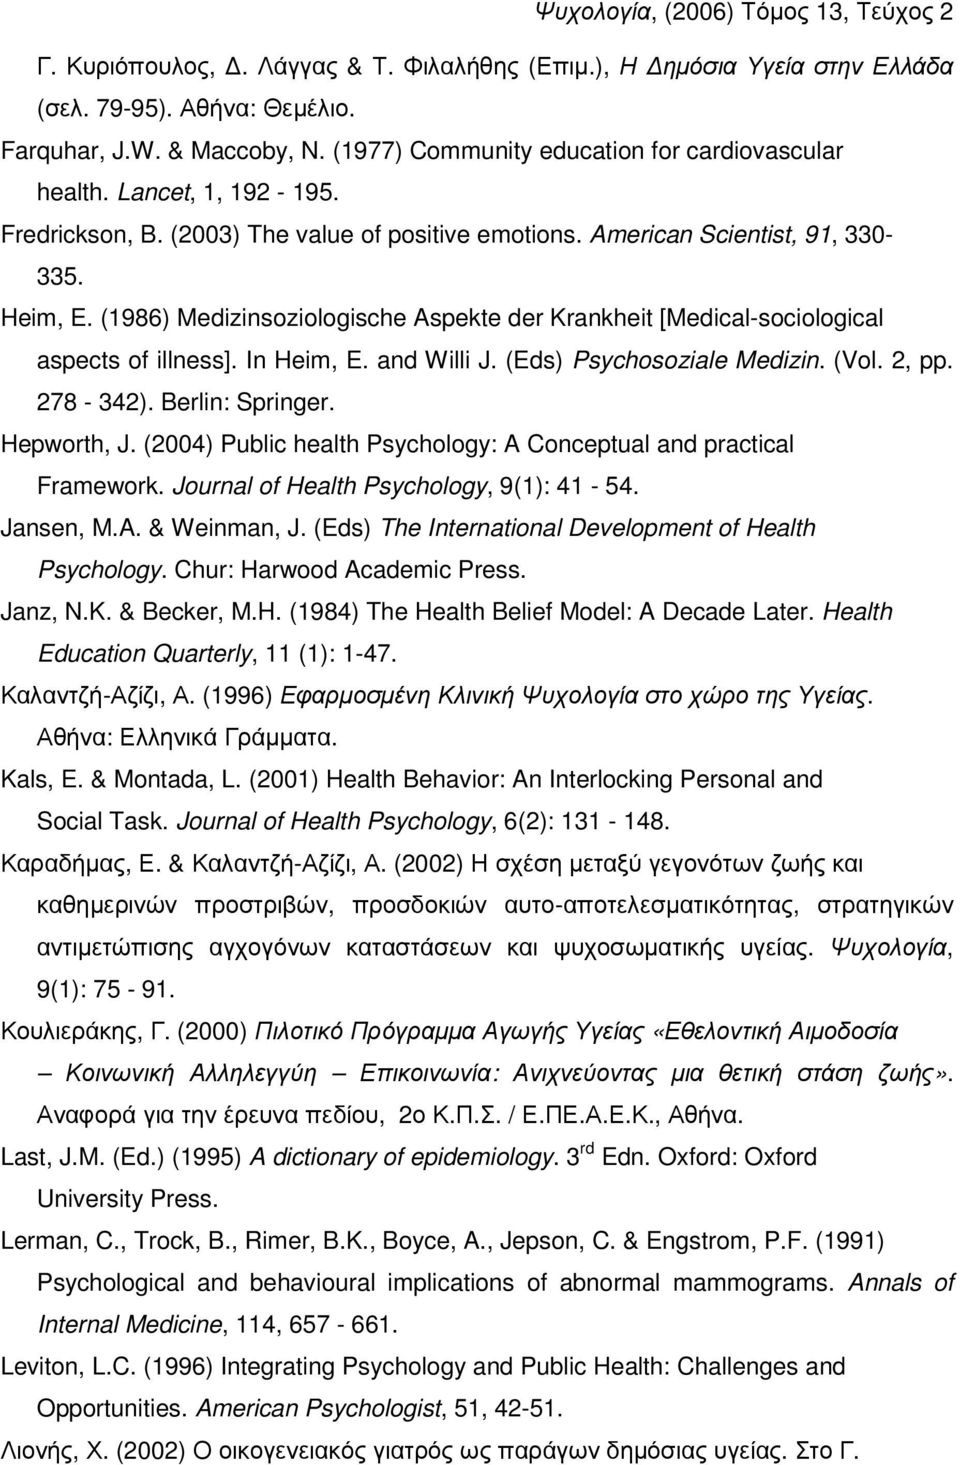 (1986) Medizinsoziologische Aspekte der Krankheit [Medical-sociological aspects of illness]. In Heim, E. and Willi J. (Eds) Psychosoziale Medizin. (Vol. 2, pp. 278-342). Berlin: Springer. Hepworth, J.